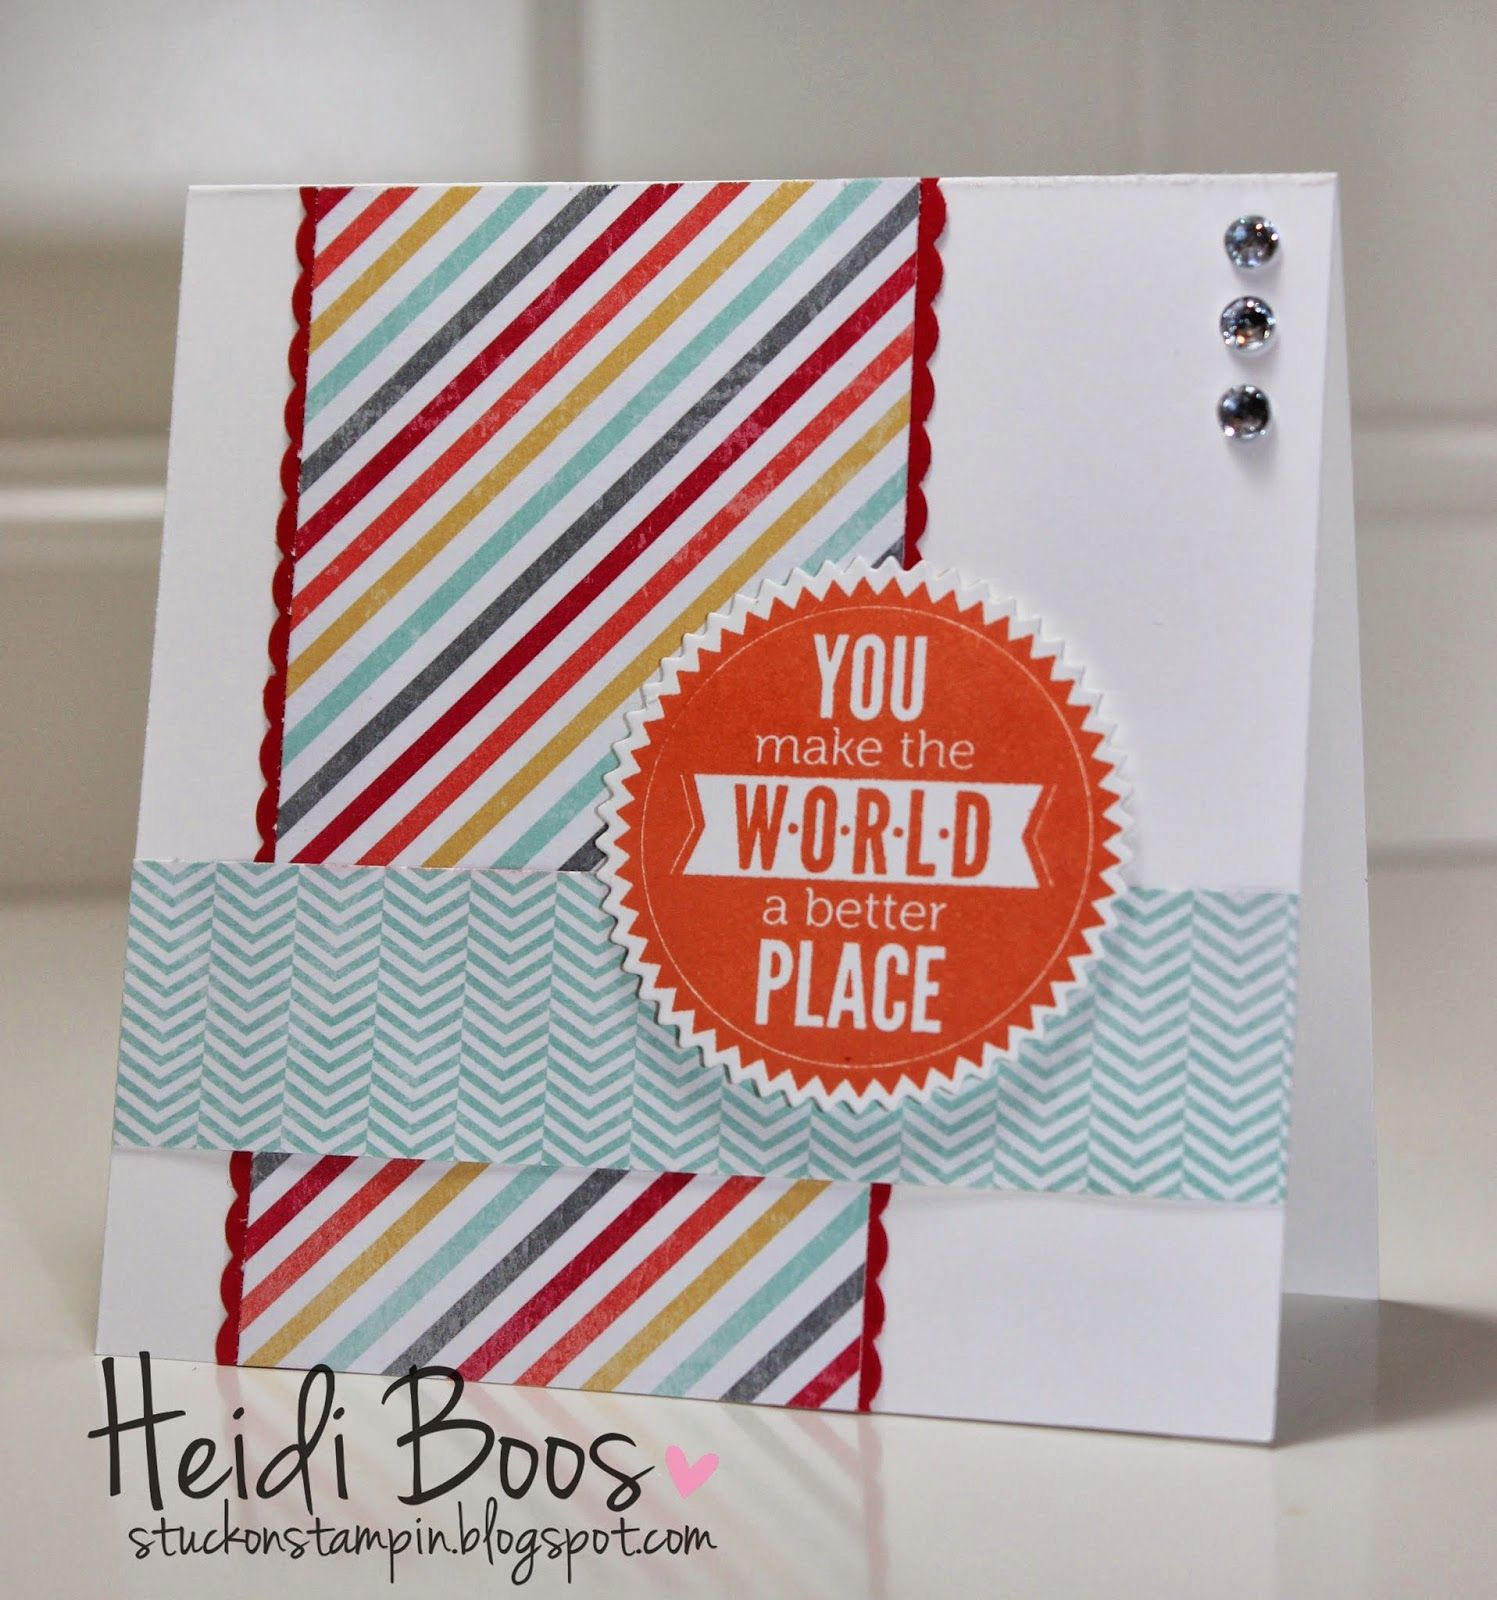 Quick u easy cards heidi boos stuckonstampinspot